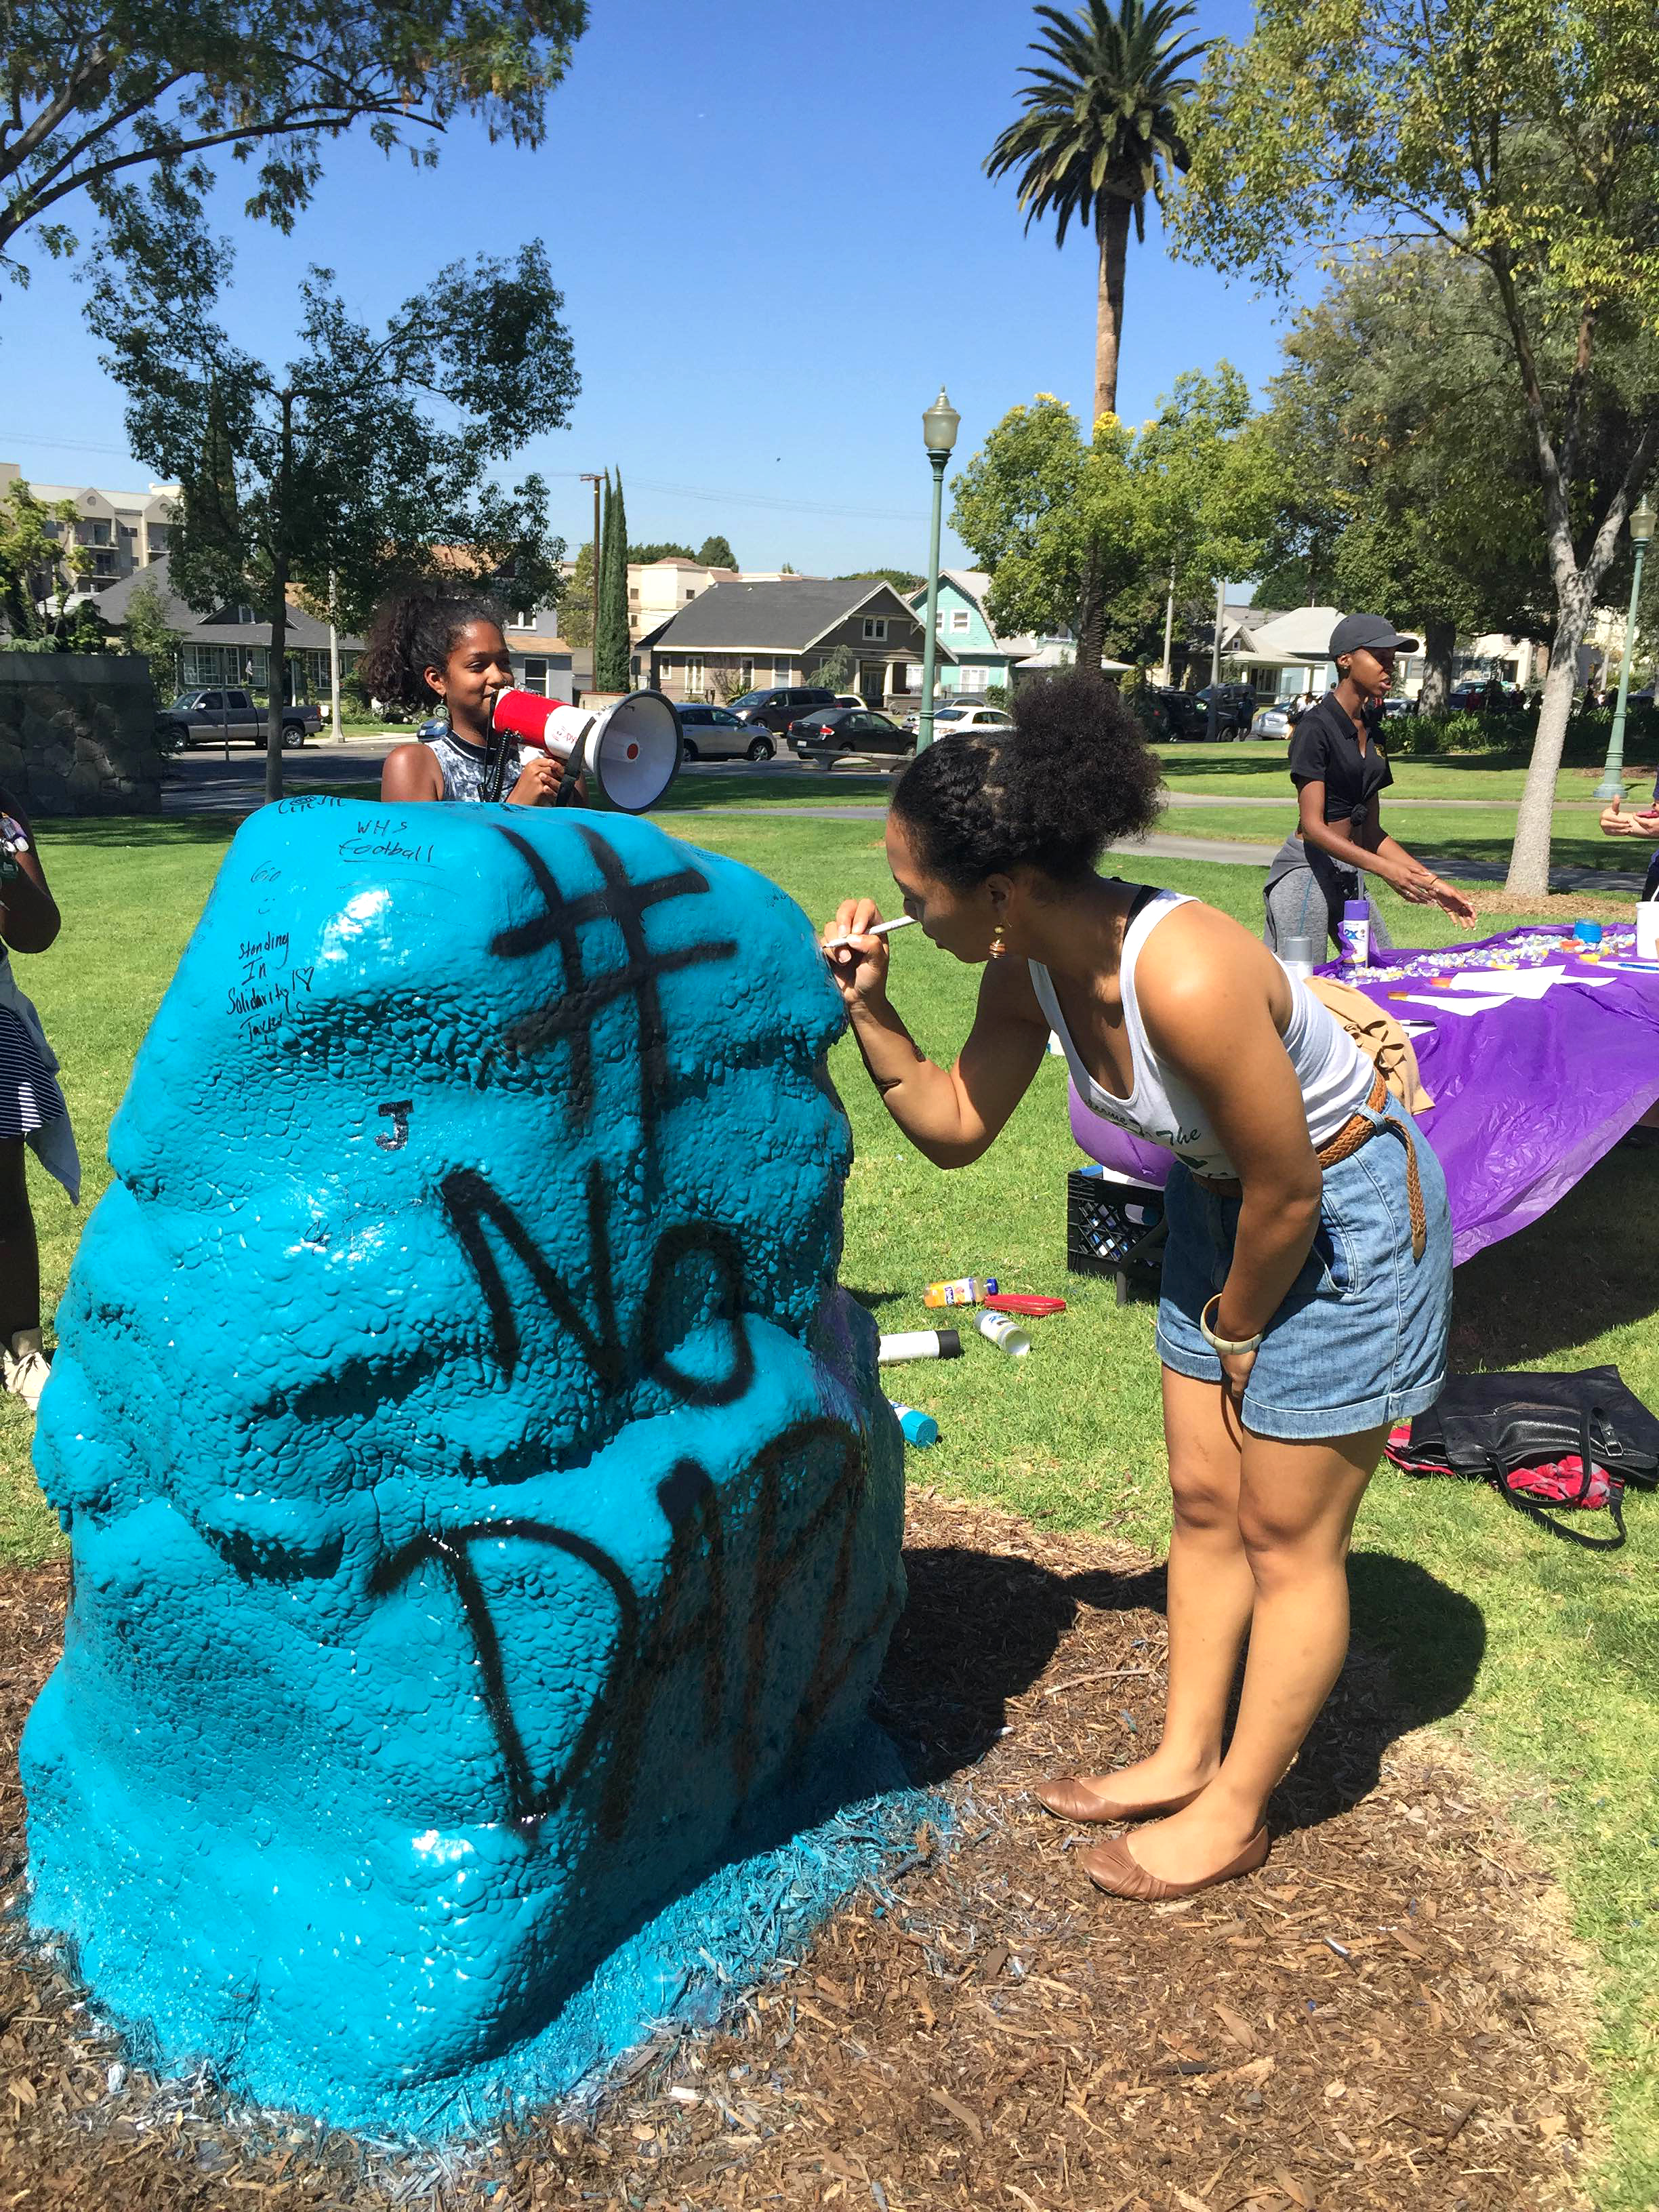 On Wednesday Sept. 28 ASWC Senate and the Social Justice Coalition (SJC) held a protest at the rock against the North Dakota Pipeline. Students were given the opportunity to sign the rock and the petition in support of the Standing Rock SiouxTribe.